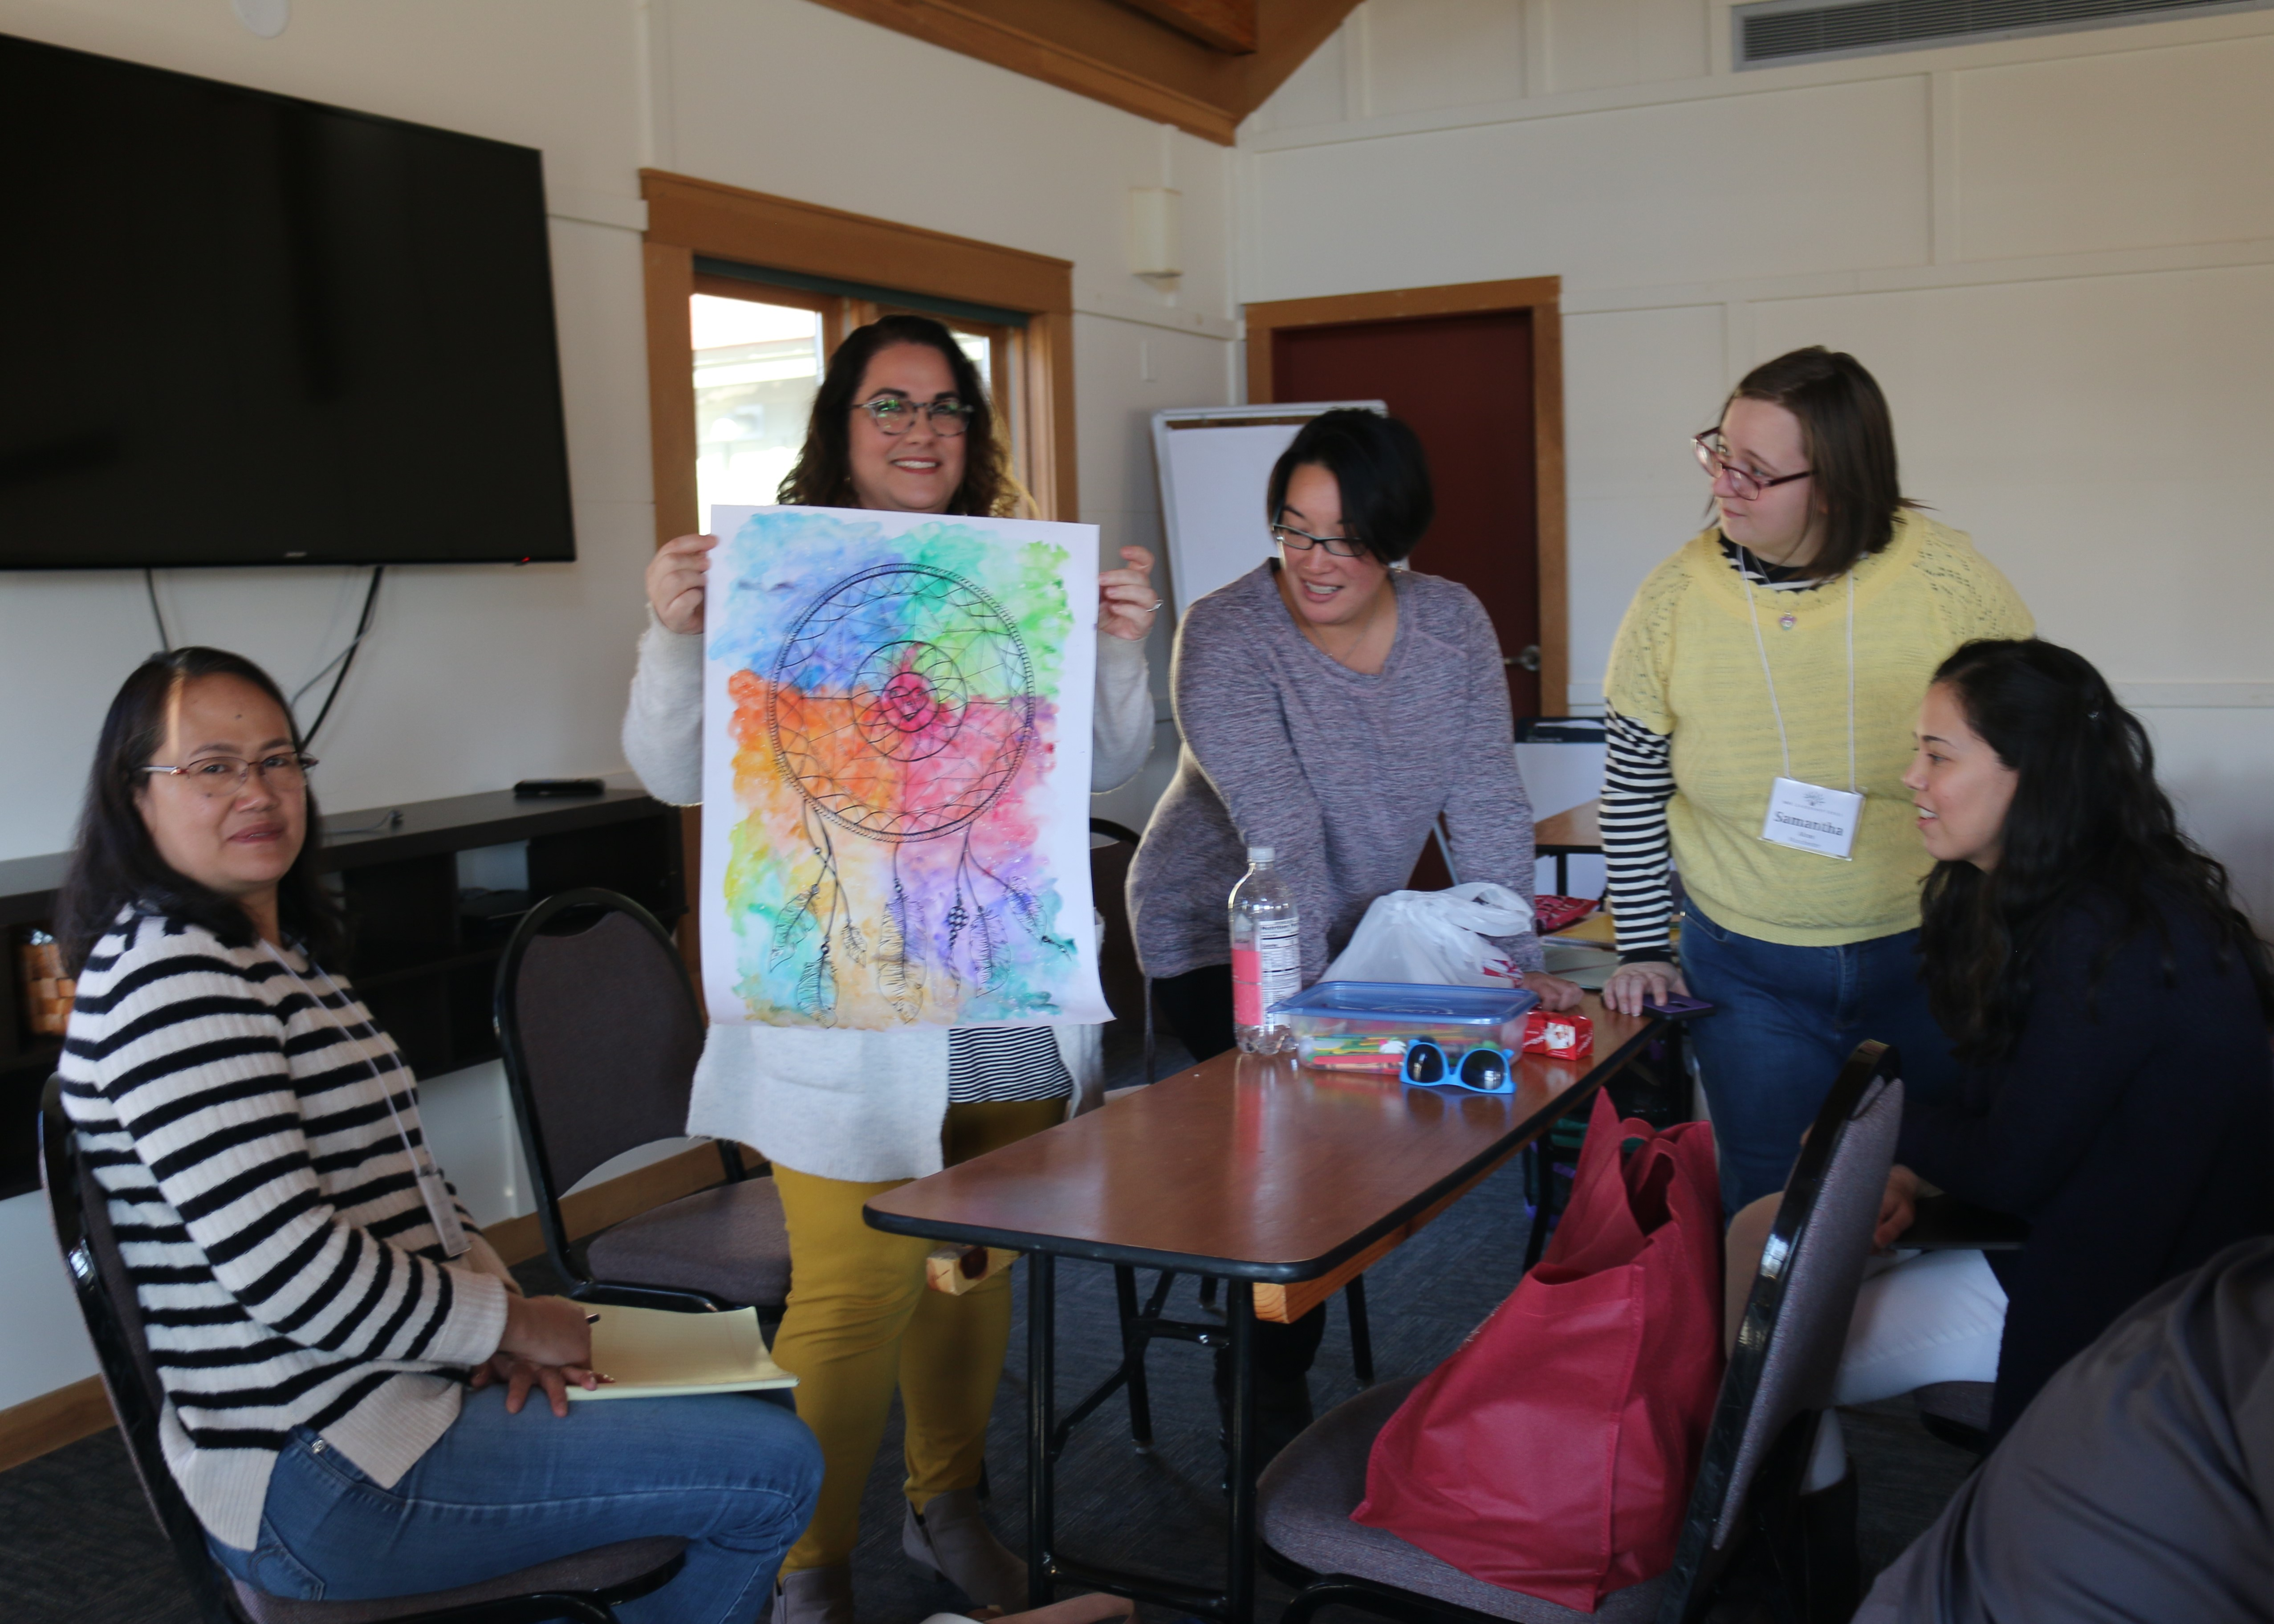 5 Leadership participants around a table looking at a piece of art that has a drawing of a colorful dreamcatcher